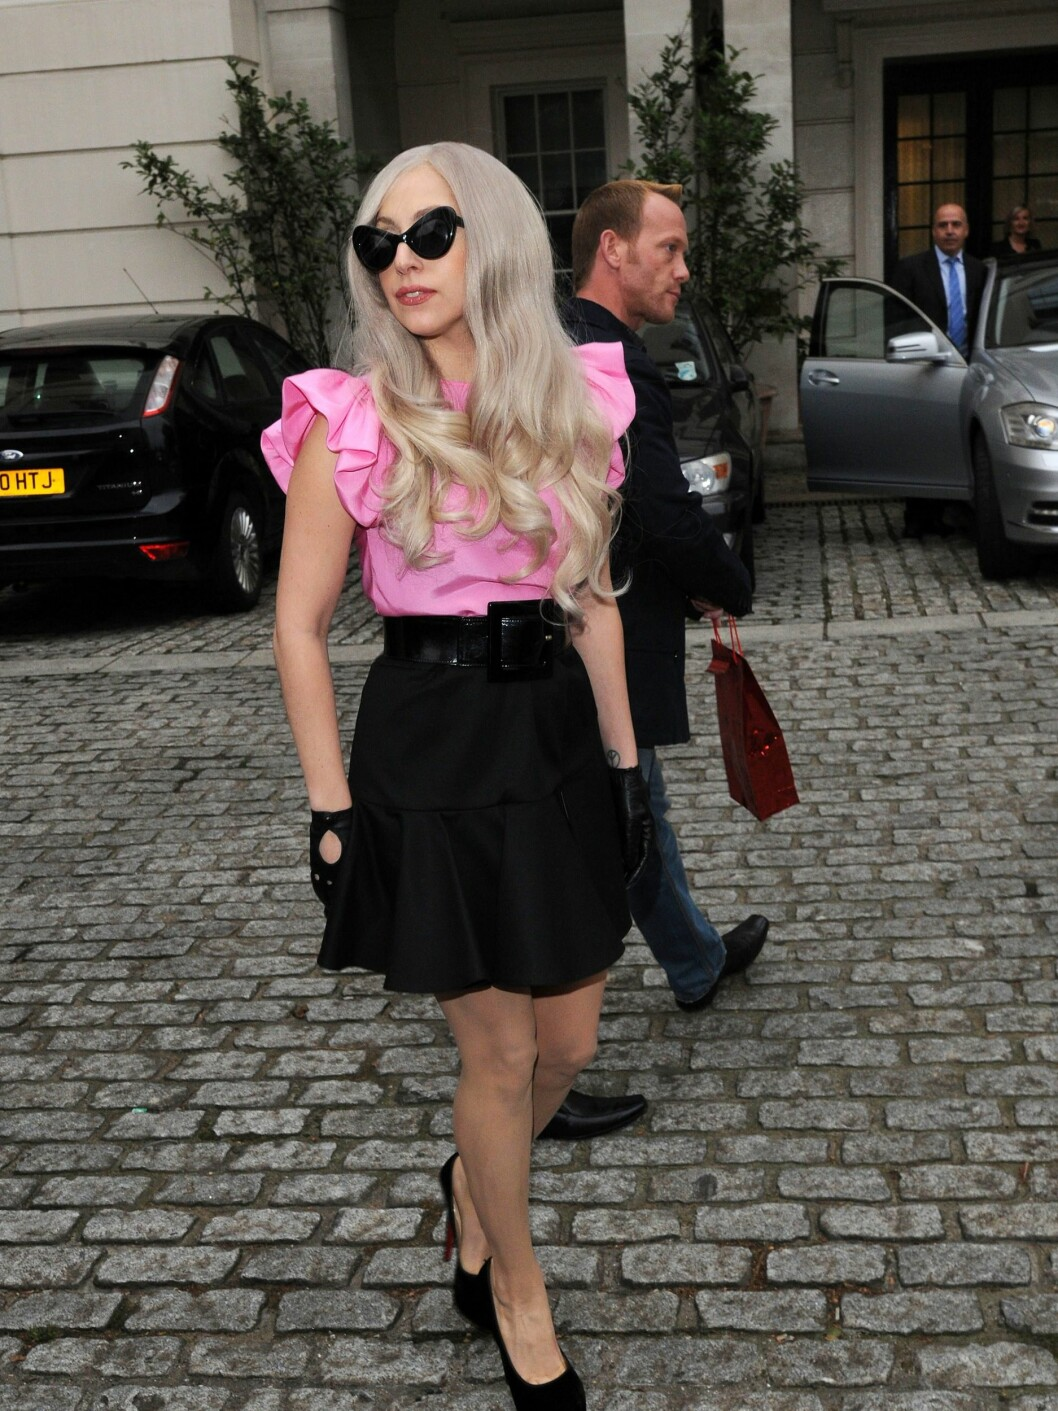 69499, LONDON, UNITED KINGDOM - Saturday November 12, 2011. Lady Gaga greets a hoard of fans and plants a kiss on a photographer in London. The pop megastar is in town to perform on The X Factor. Photograph: © PacificCoastNews.com **FEE MUST BE AGREED PRIOR TO USAGE** **E-TABLET/IPAD & MOBILE PHONE APP PUBLISHING REQUIRES ADDITIONAL FEES**ÊLOS ANGELES OFFICE: 1 310 822 0419ÊÊLONDON OFFICE OFFICE: +44 208 090 4079 / ALL OVER PRESS / ALL OVER PRESS Foto: All Over Press